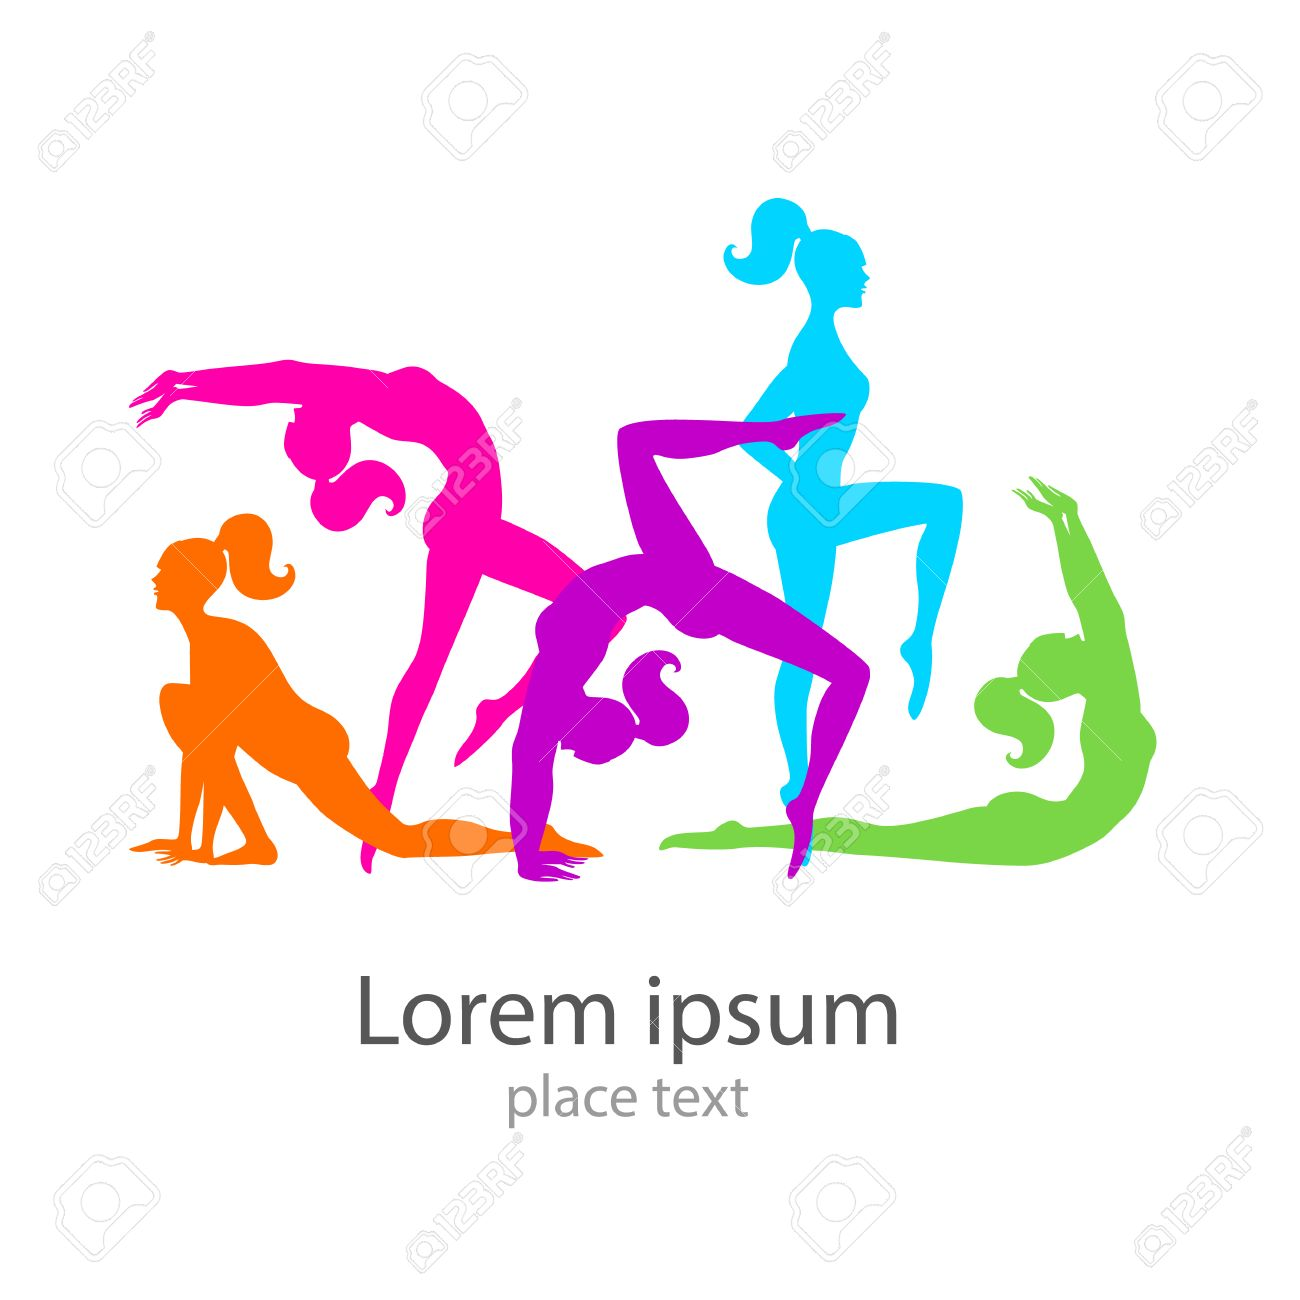 Female Sports Template Logo Fitness Gym Health Beauty Stock Vector